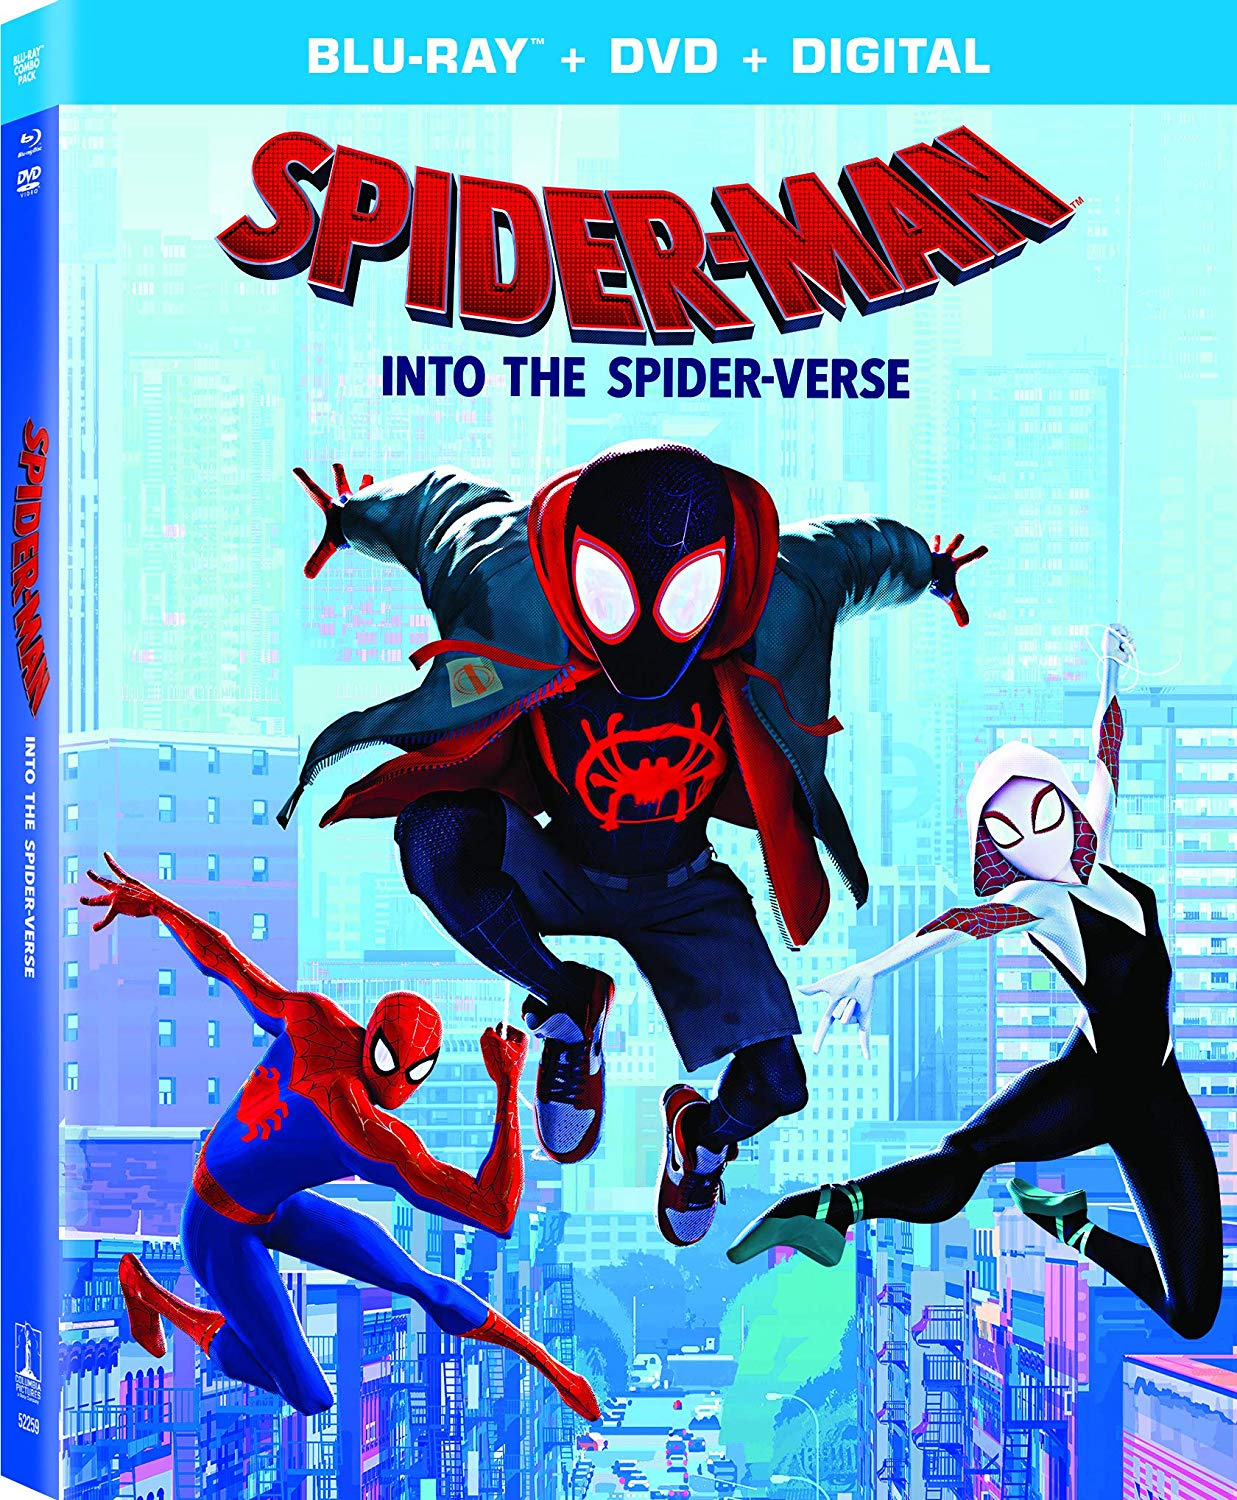 Spider-Man Into the Spider-Verse on Blu-ray